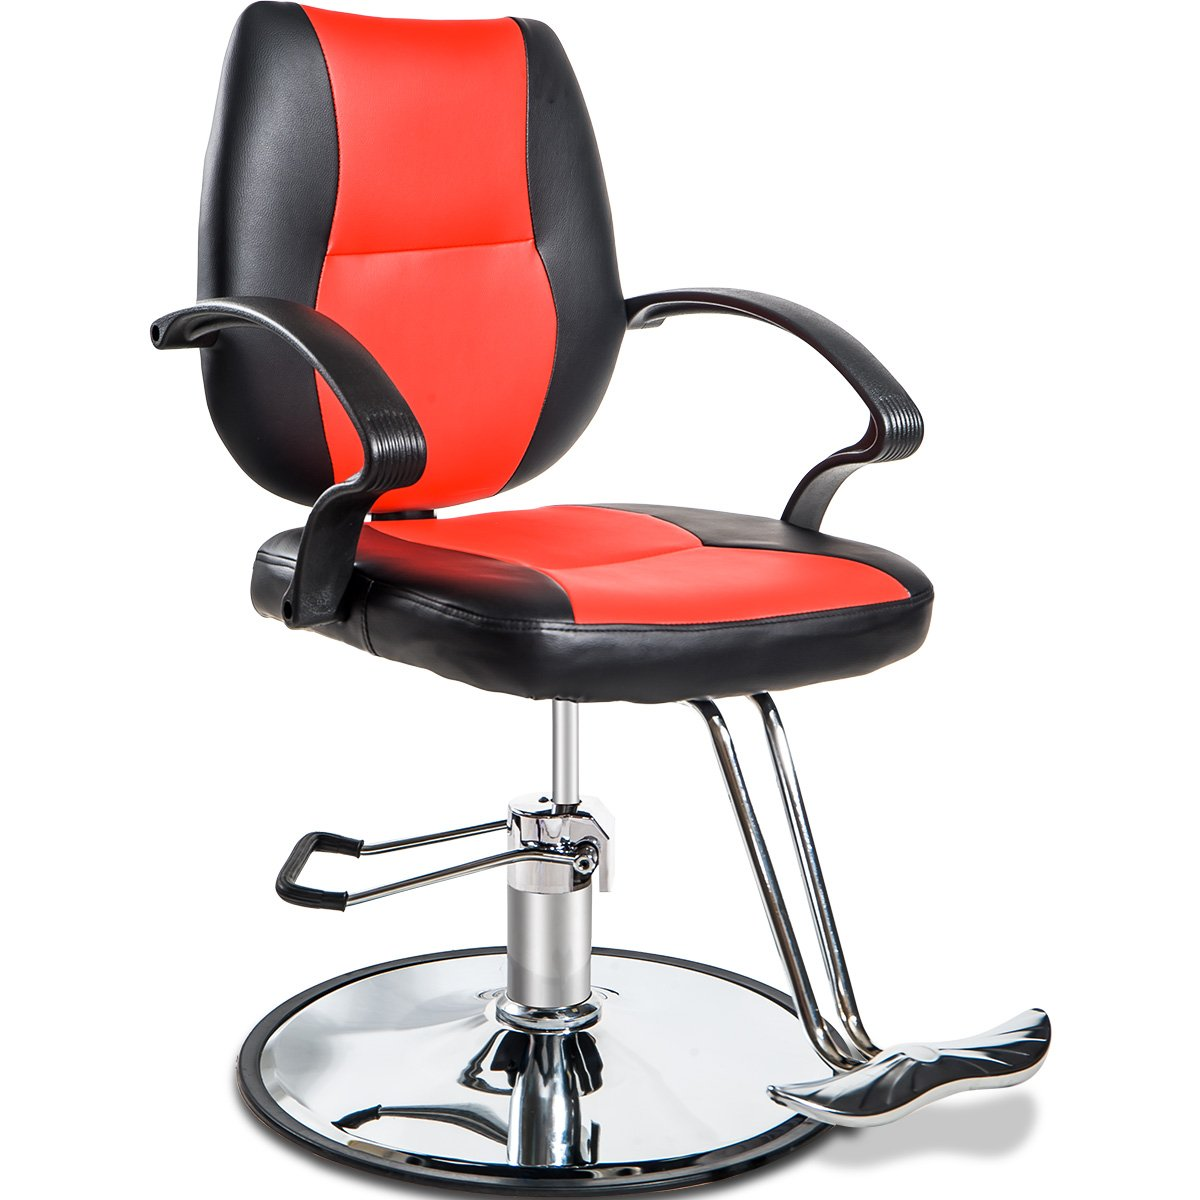 Merax Classic Hydraulic Barber Chair Styling Salon Beauty Shampoo Spa Equipment (Basic)